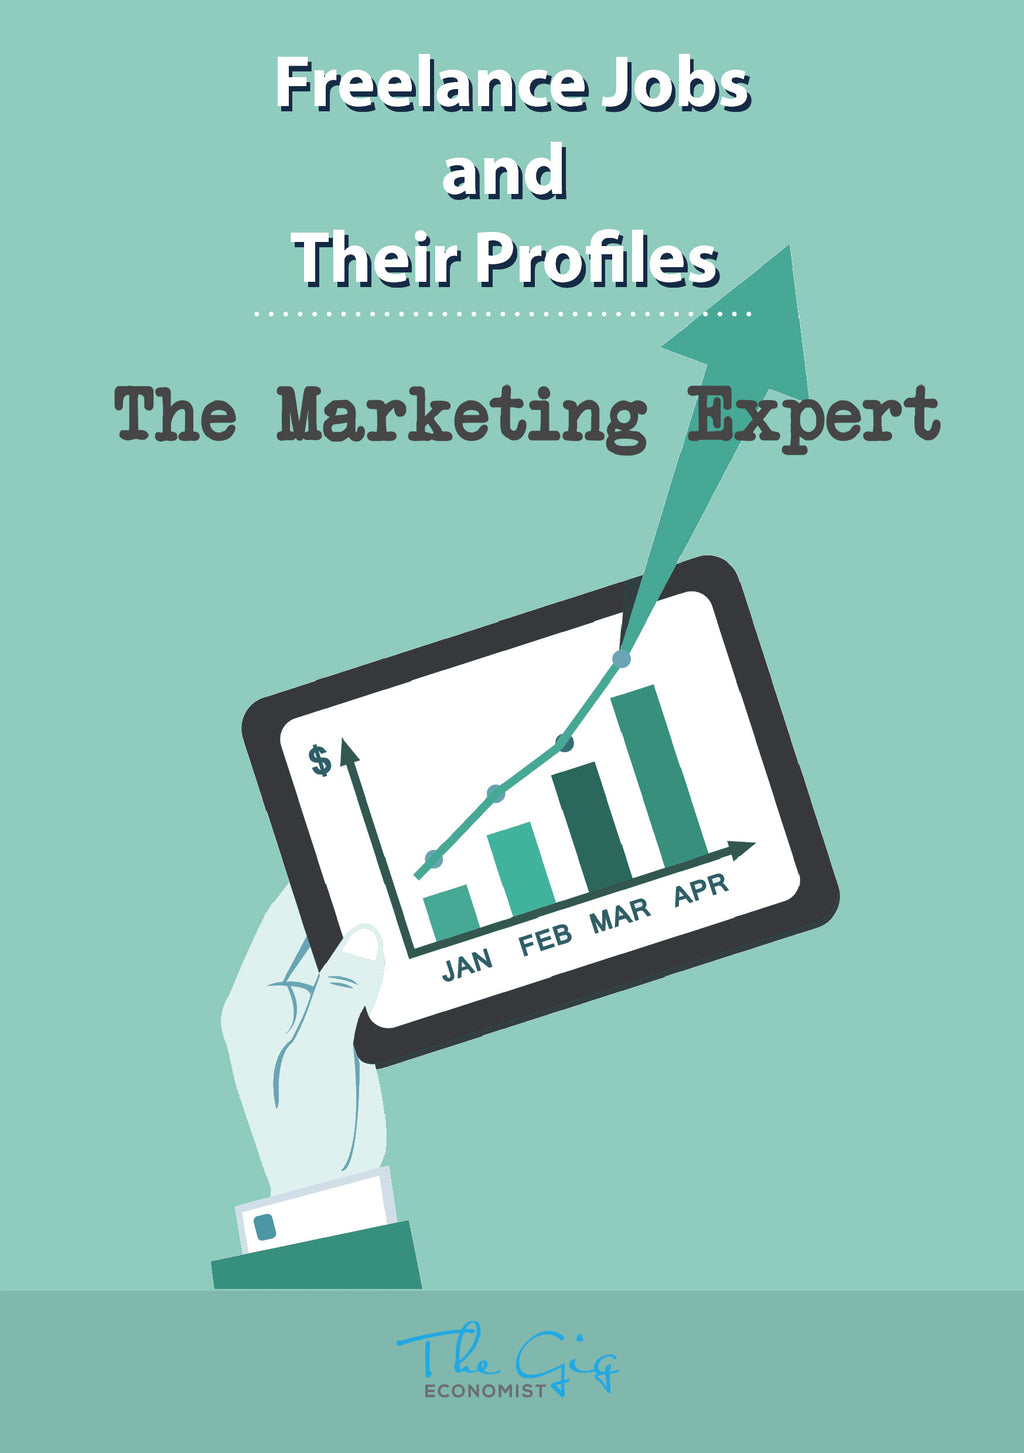 Freelance Online Marketing Job Profile | The Gig Economist